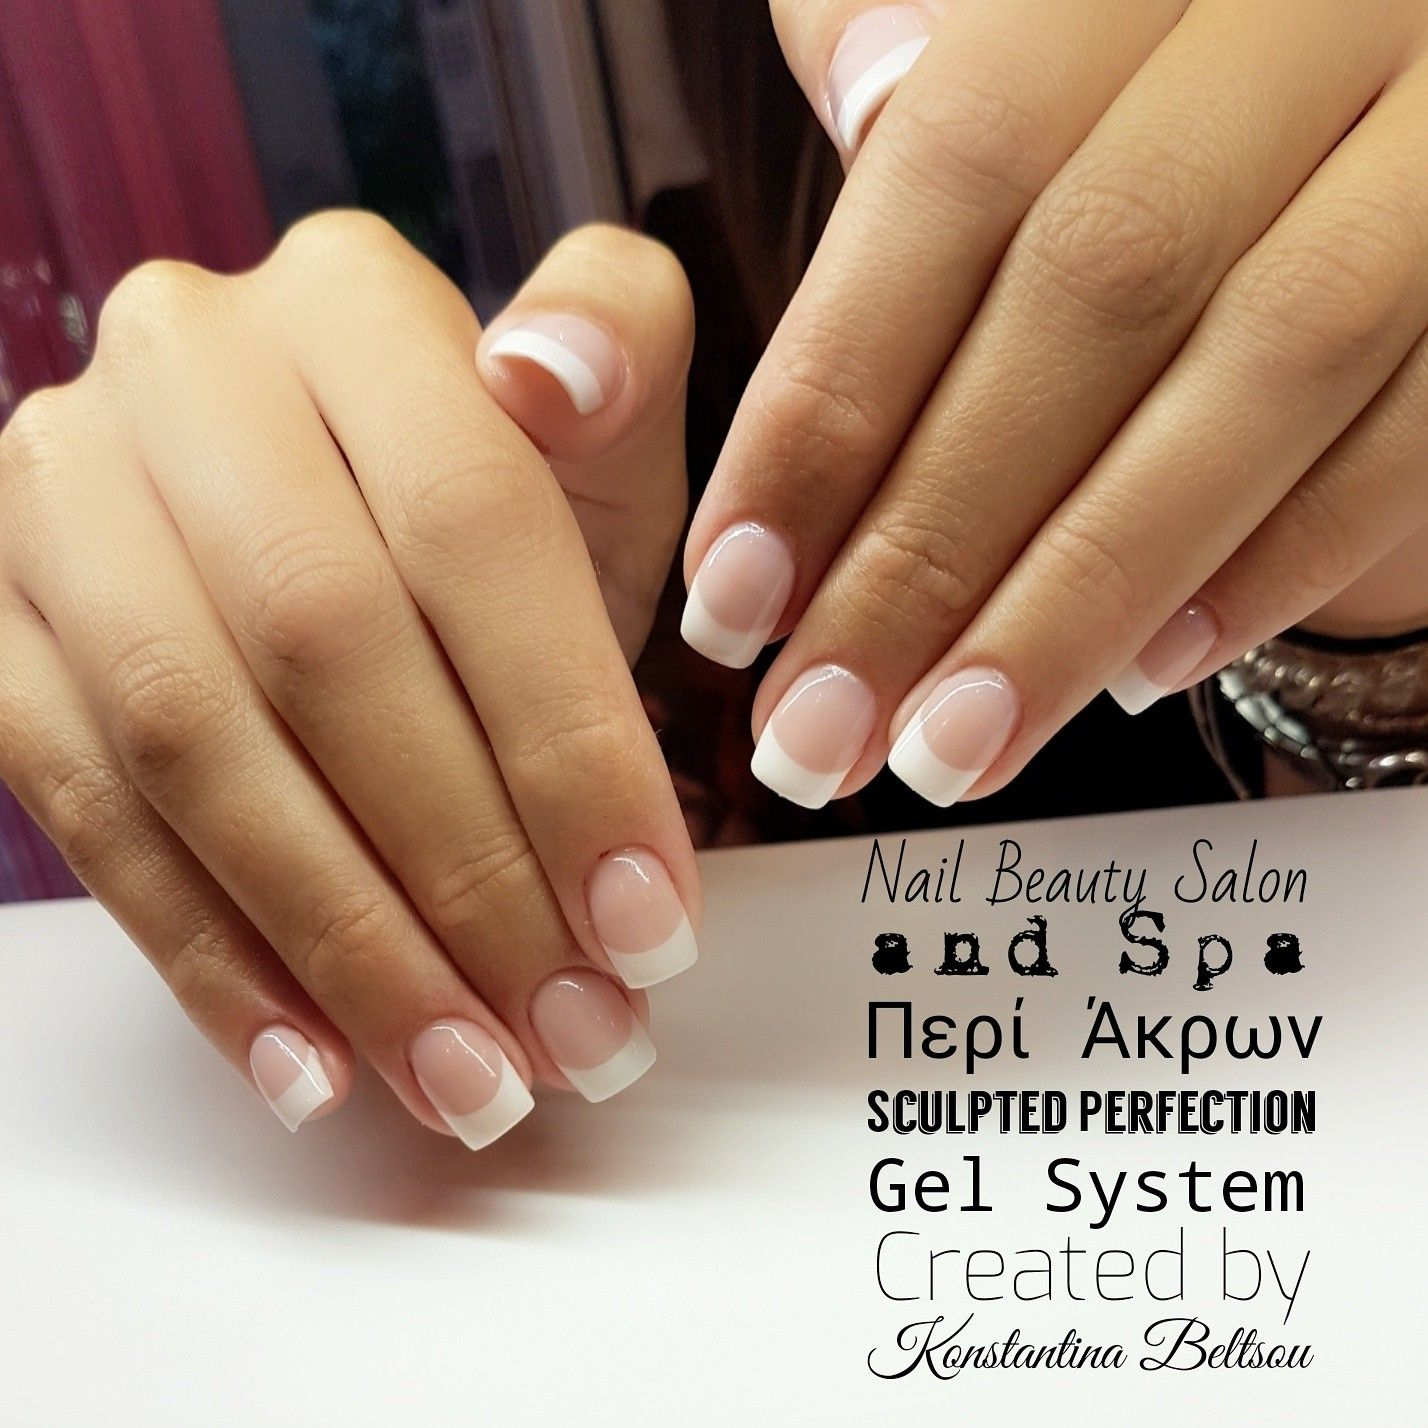 Short nails square shape nails, Acrylic nails, French manicure ...